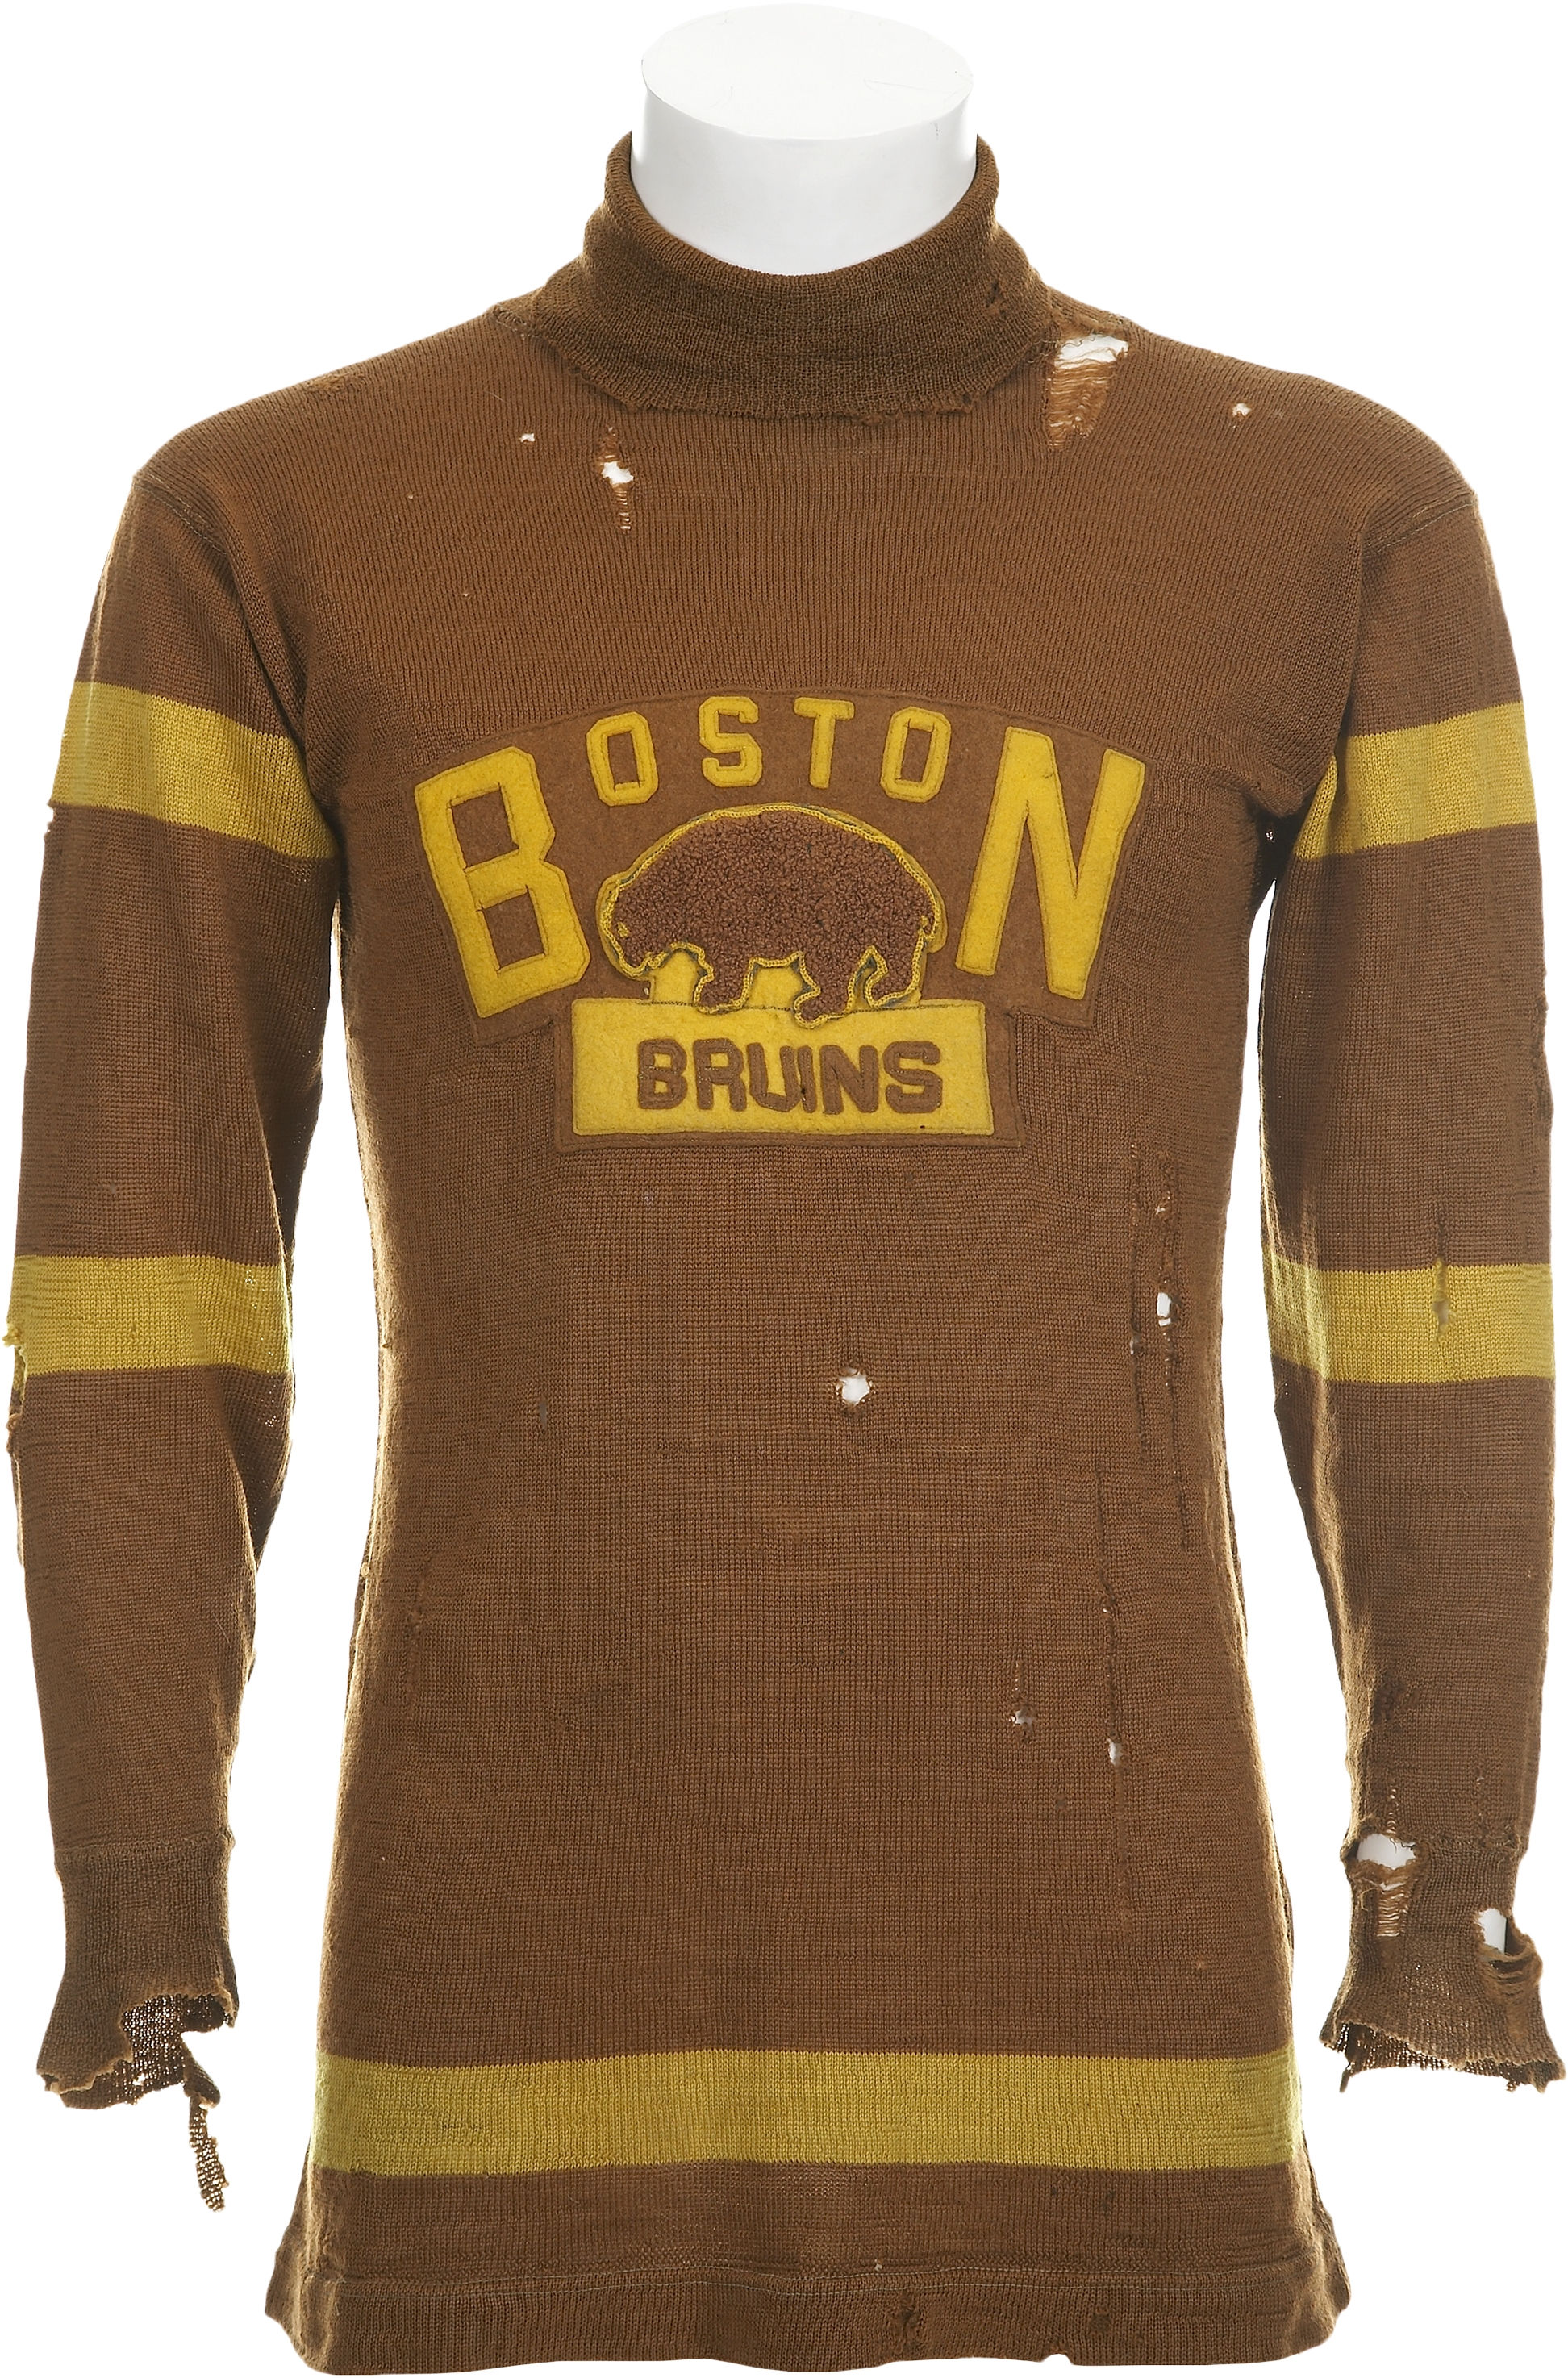 Boston Bruins Jersey History b7af38438